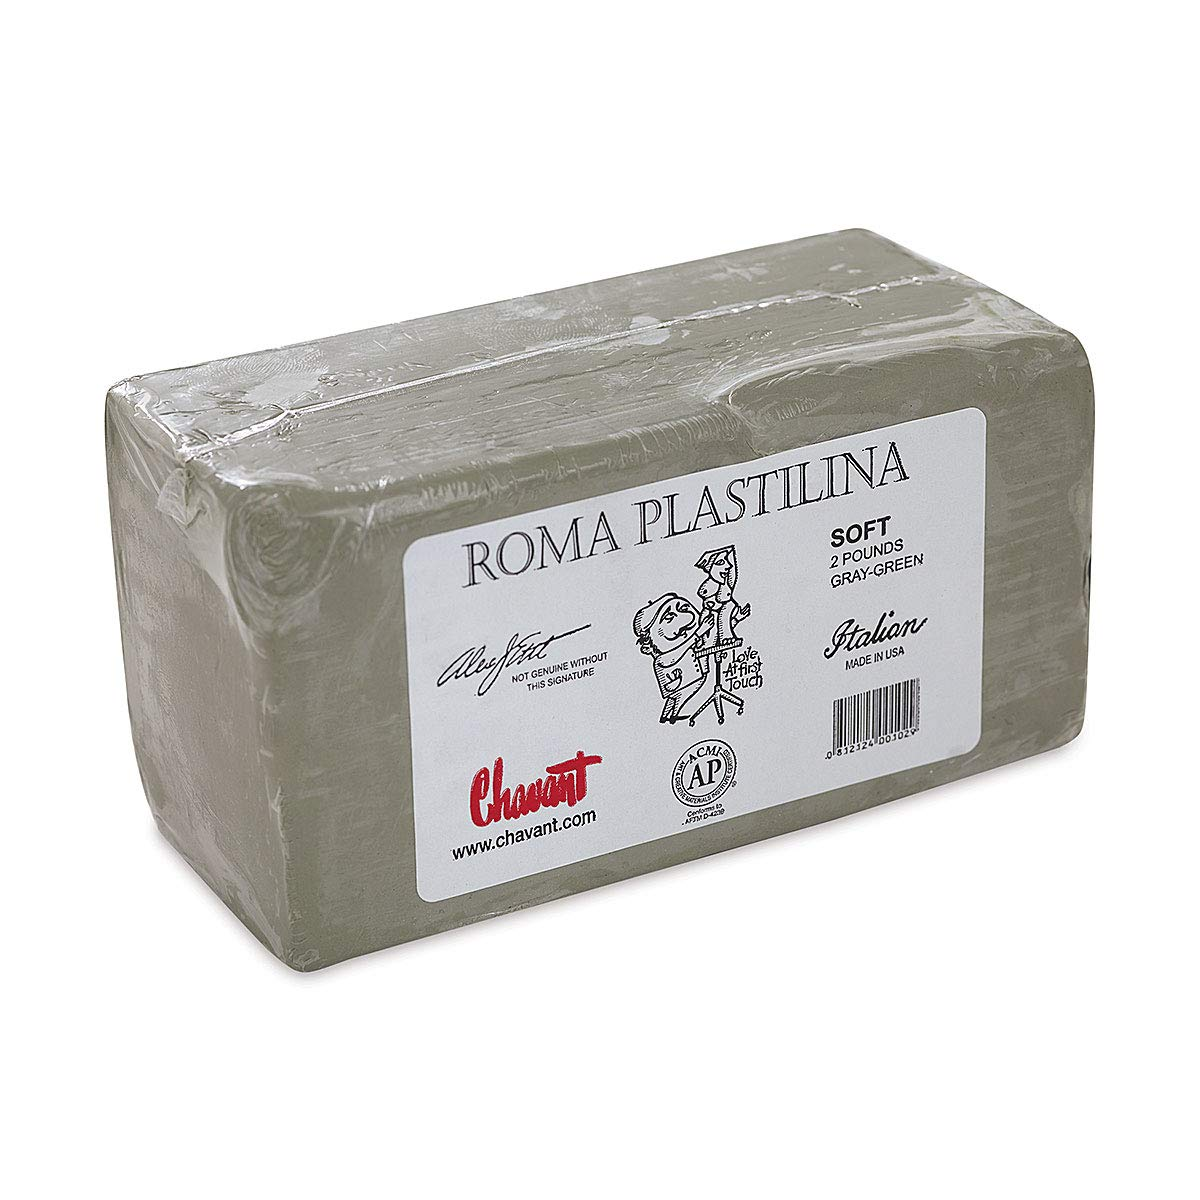 Sculpture House Roma Plastilina Modeling Material gray-green No. 1 - Soft